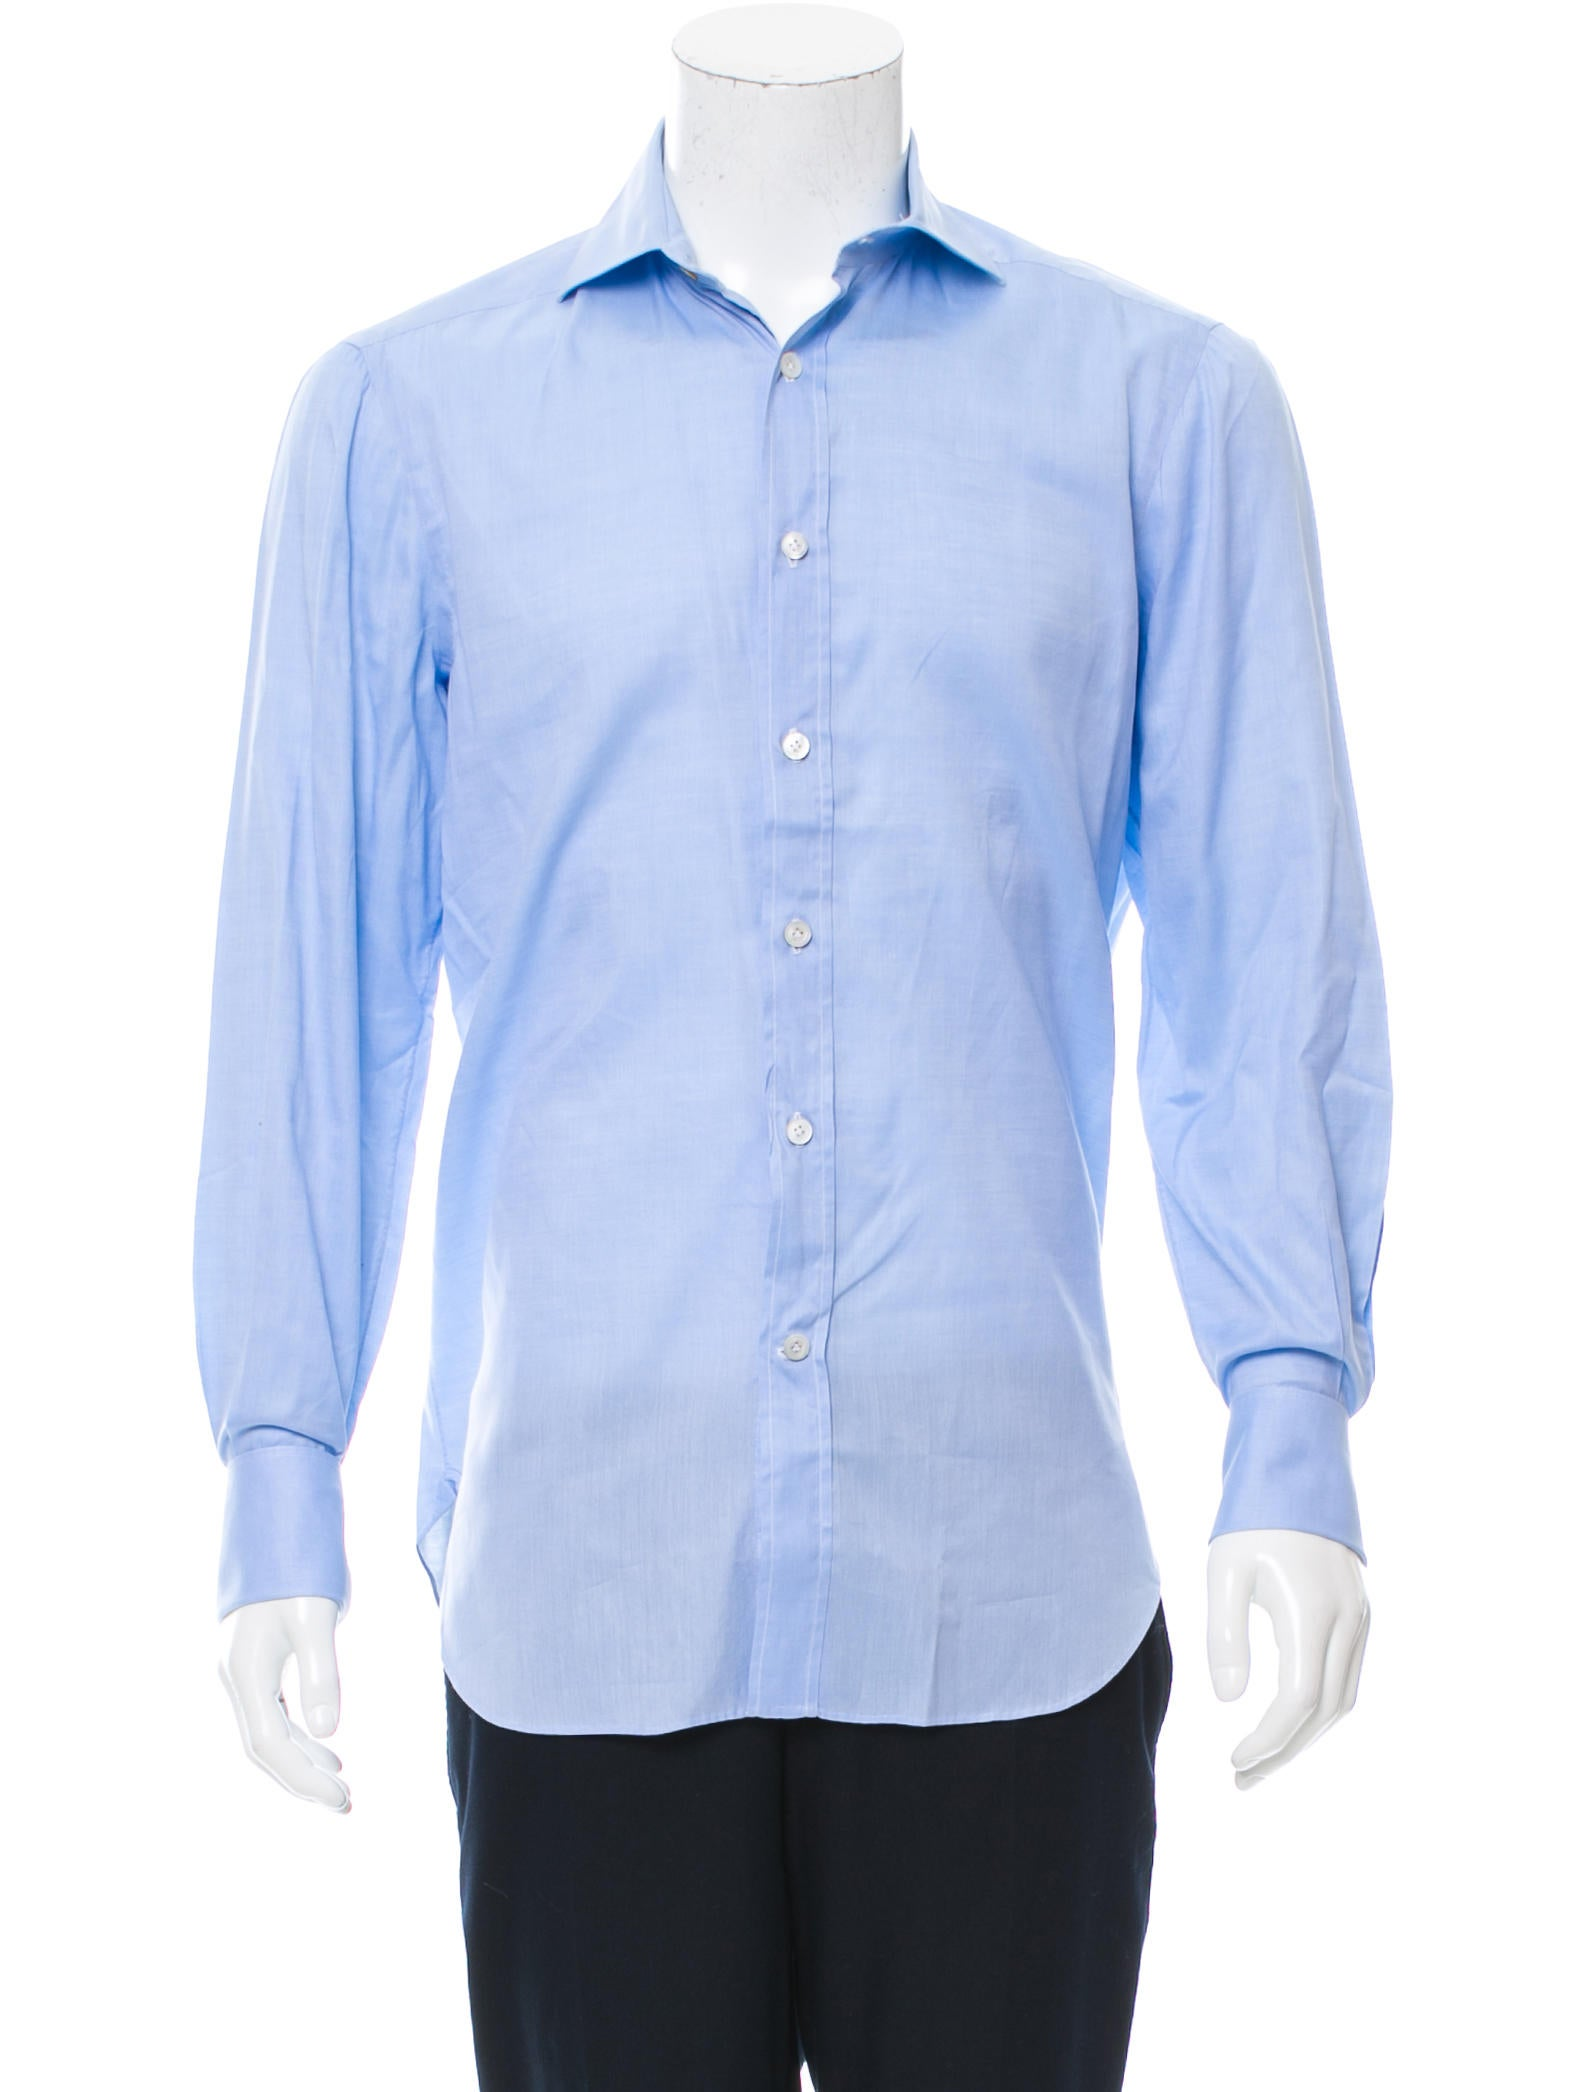 Kiton french cuff button up shirt clothing kit21548 for What is a french cuff shirt